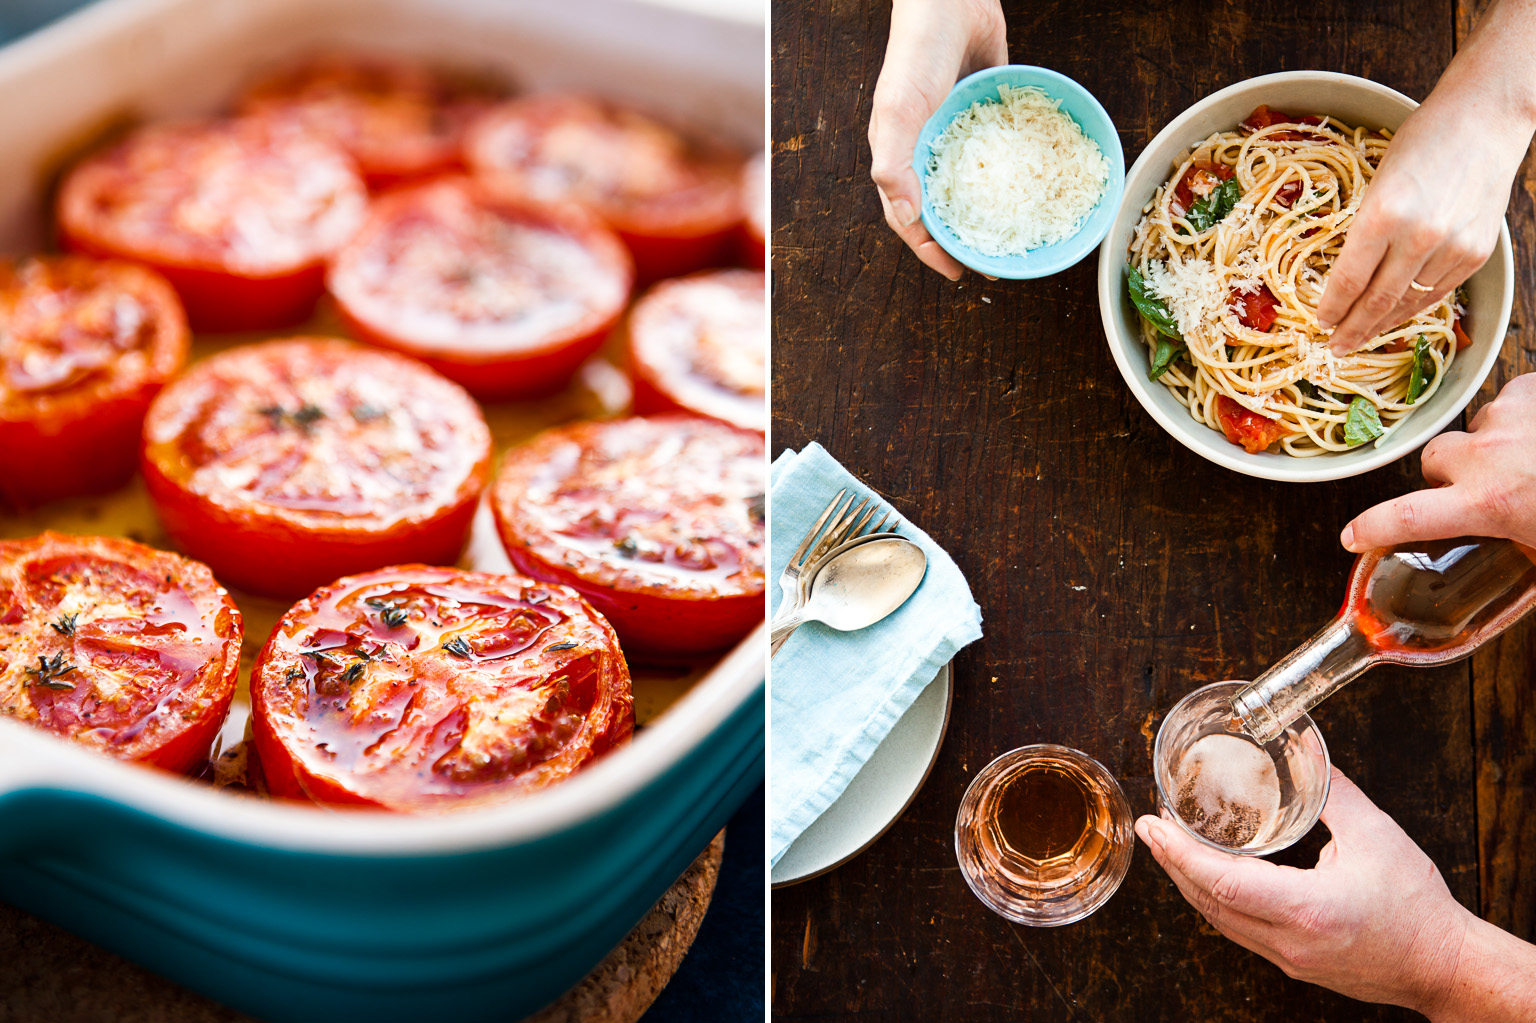 Roasted tomatos and pasta